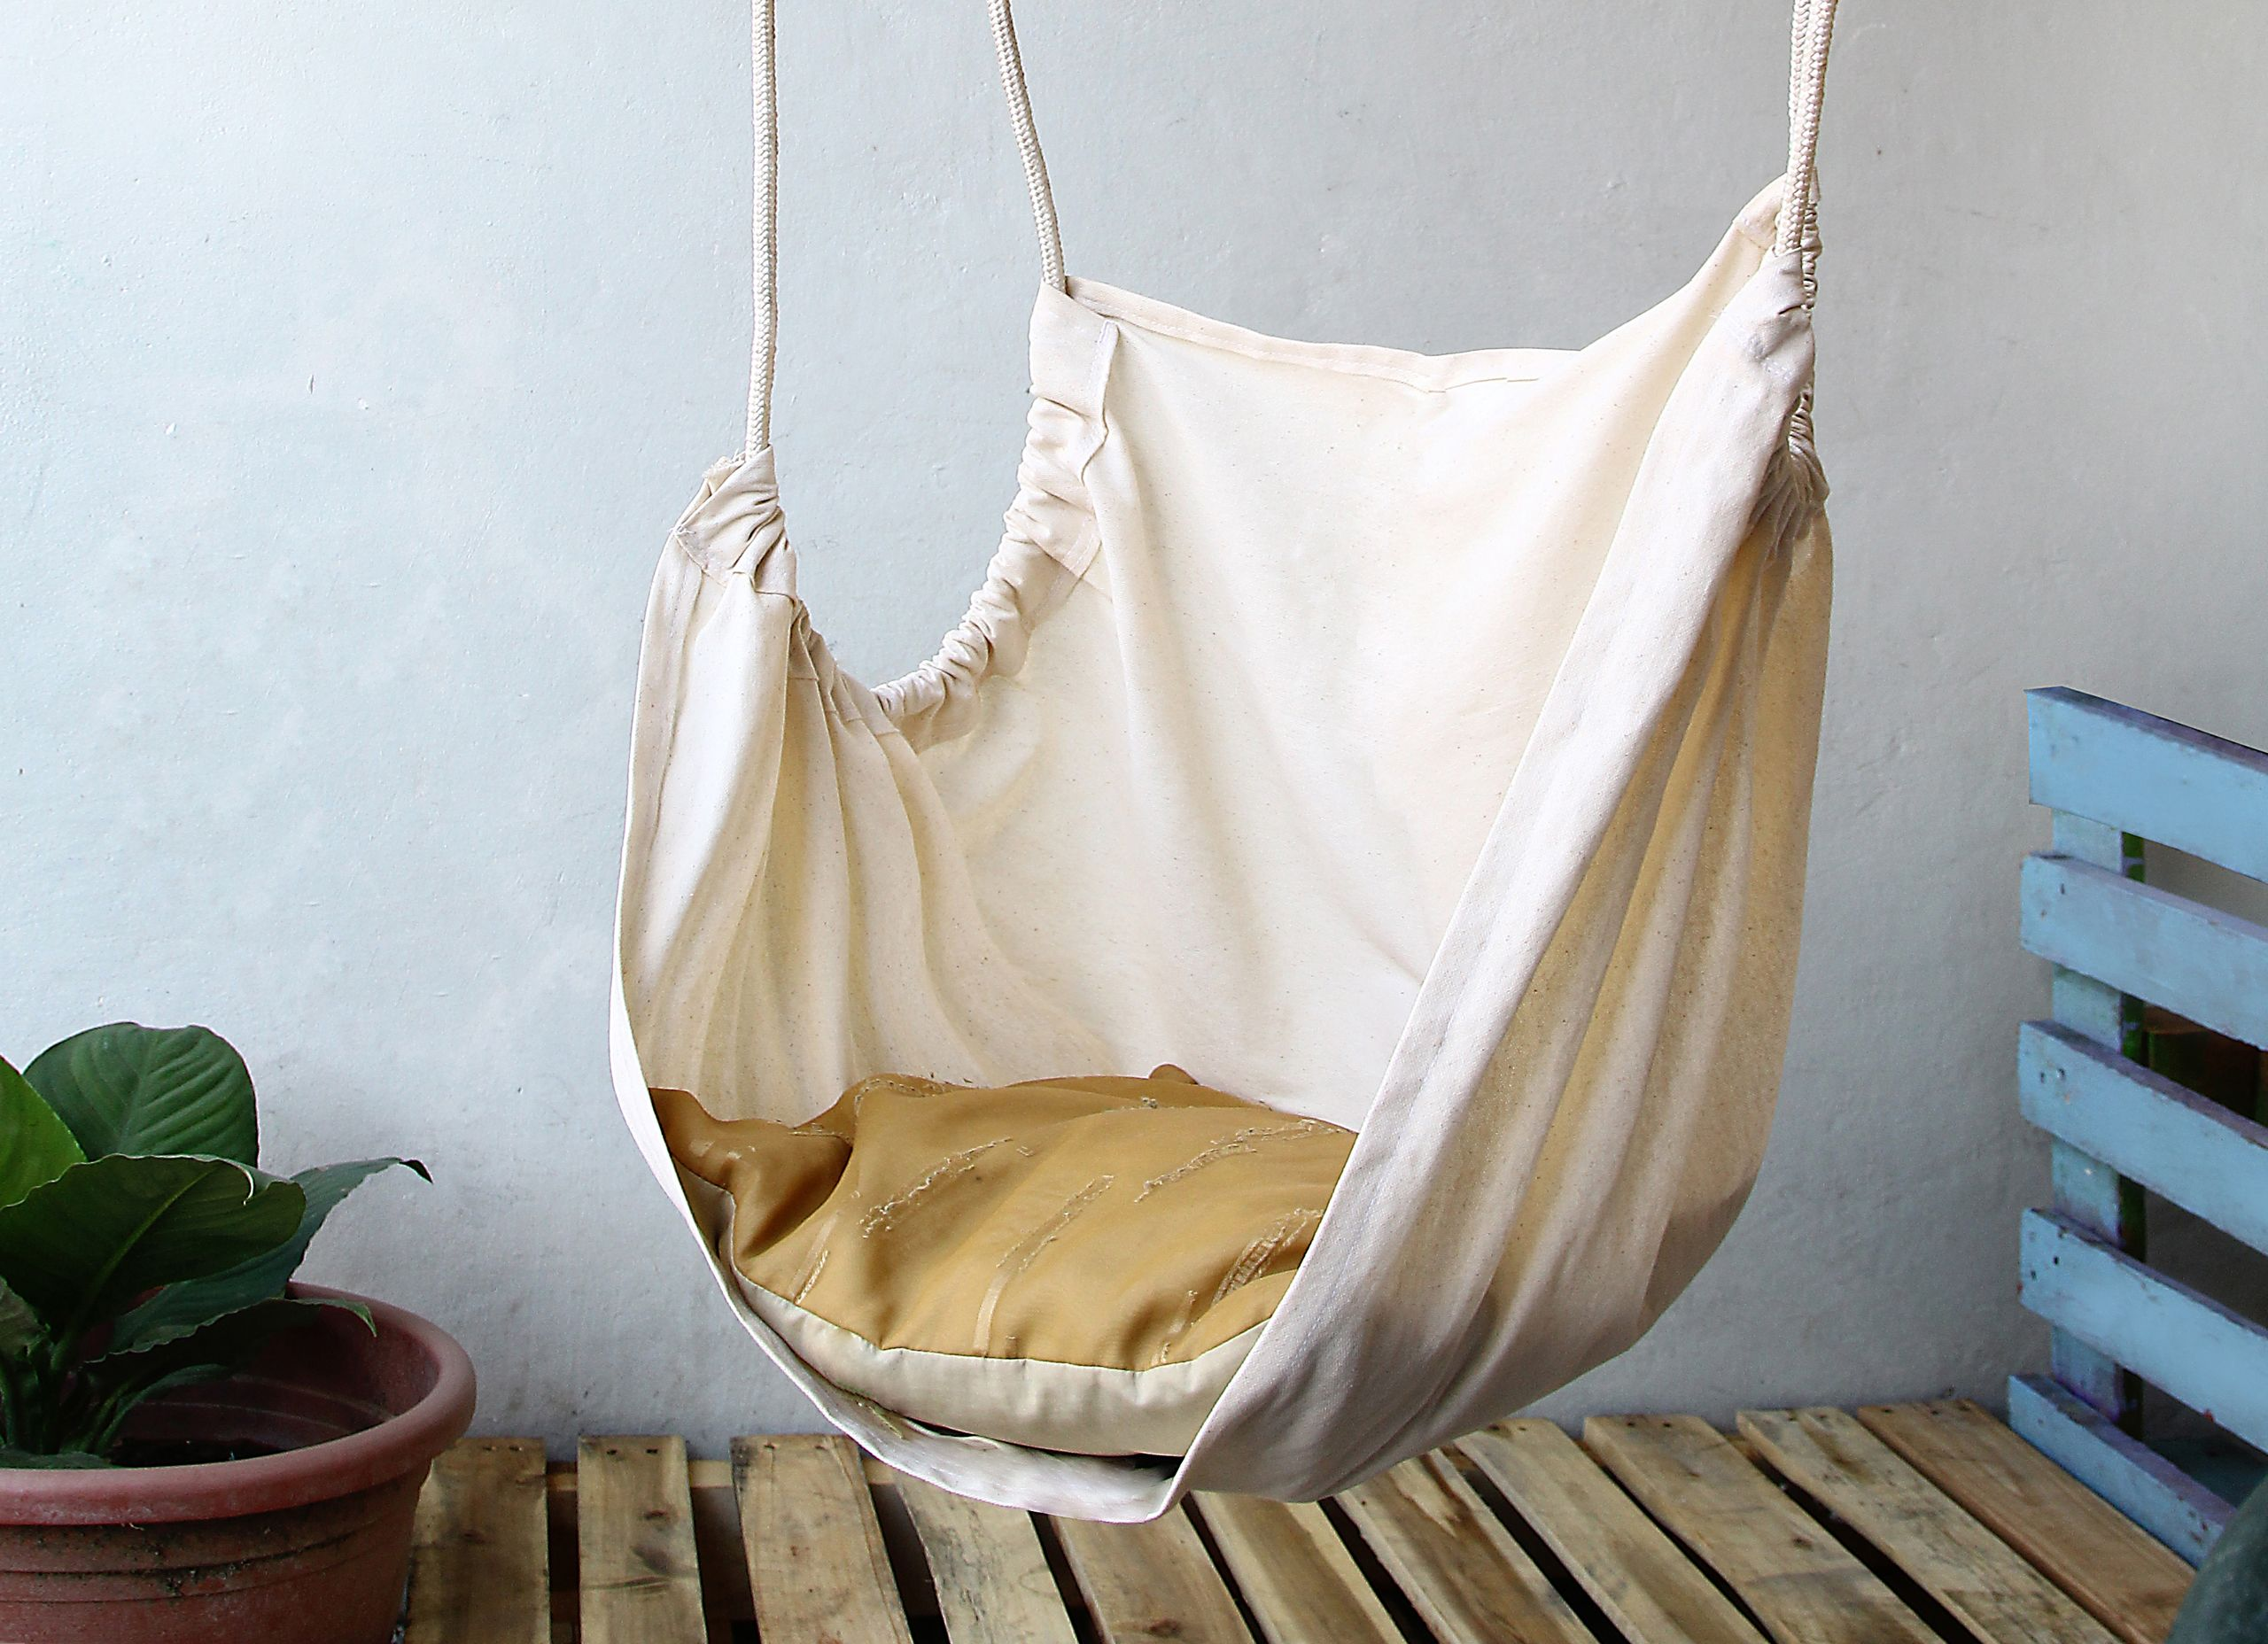 Make A Hammock Chair Diy Hammock Diy Hanging Chair Diy Hammock